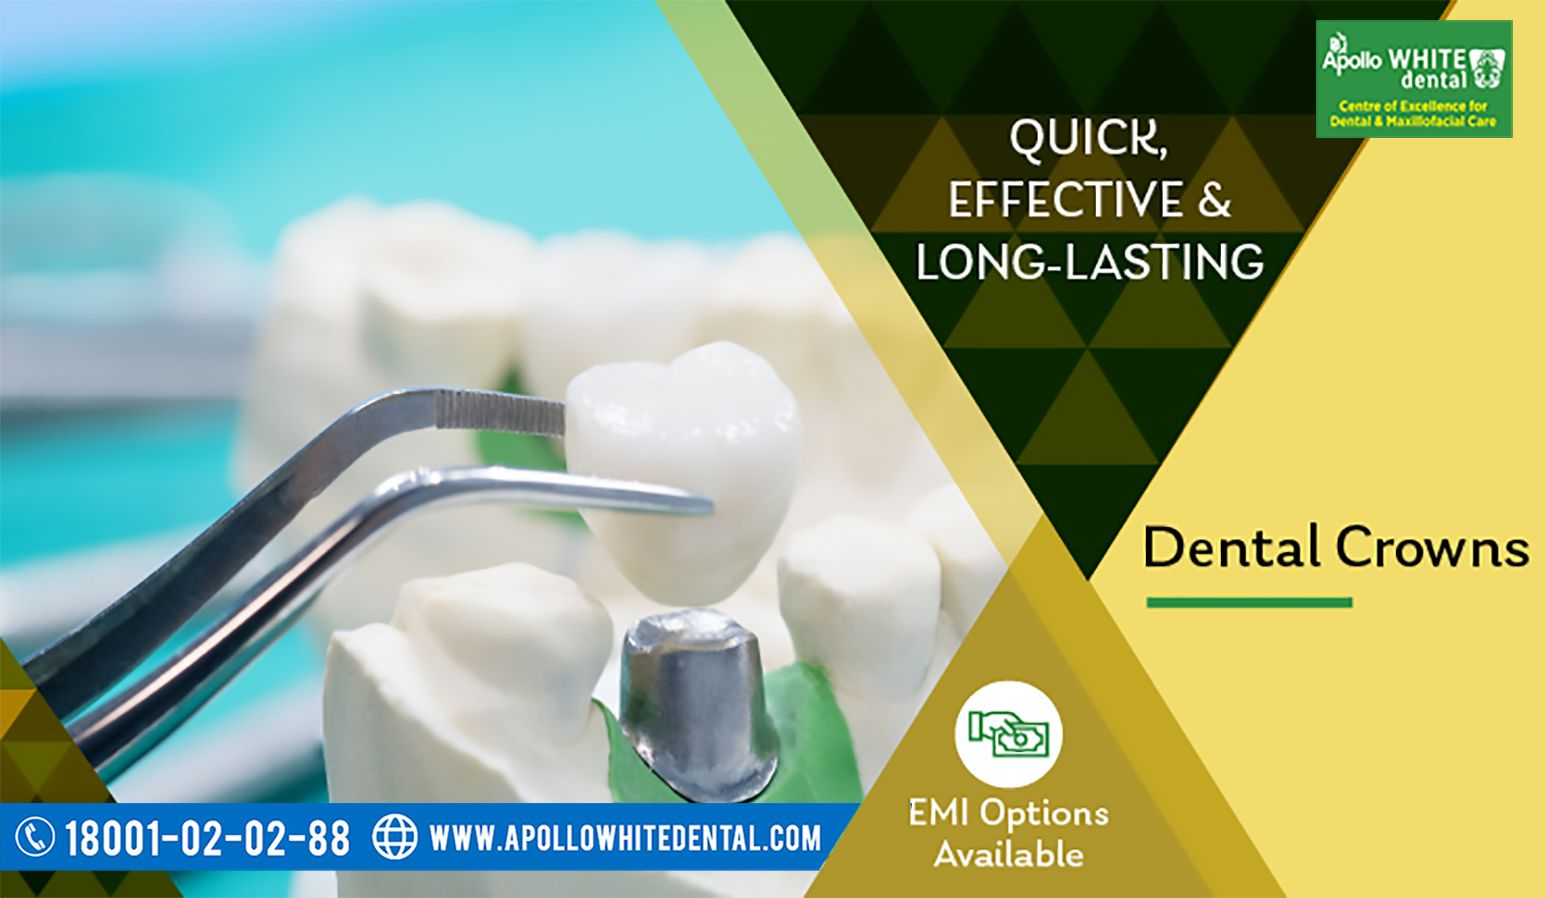 Book an appointment with best dentist apollowhitedental